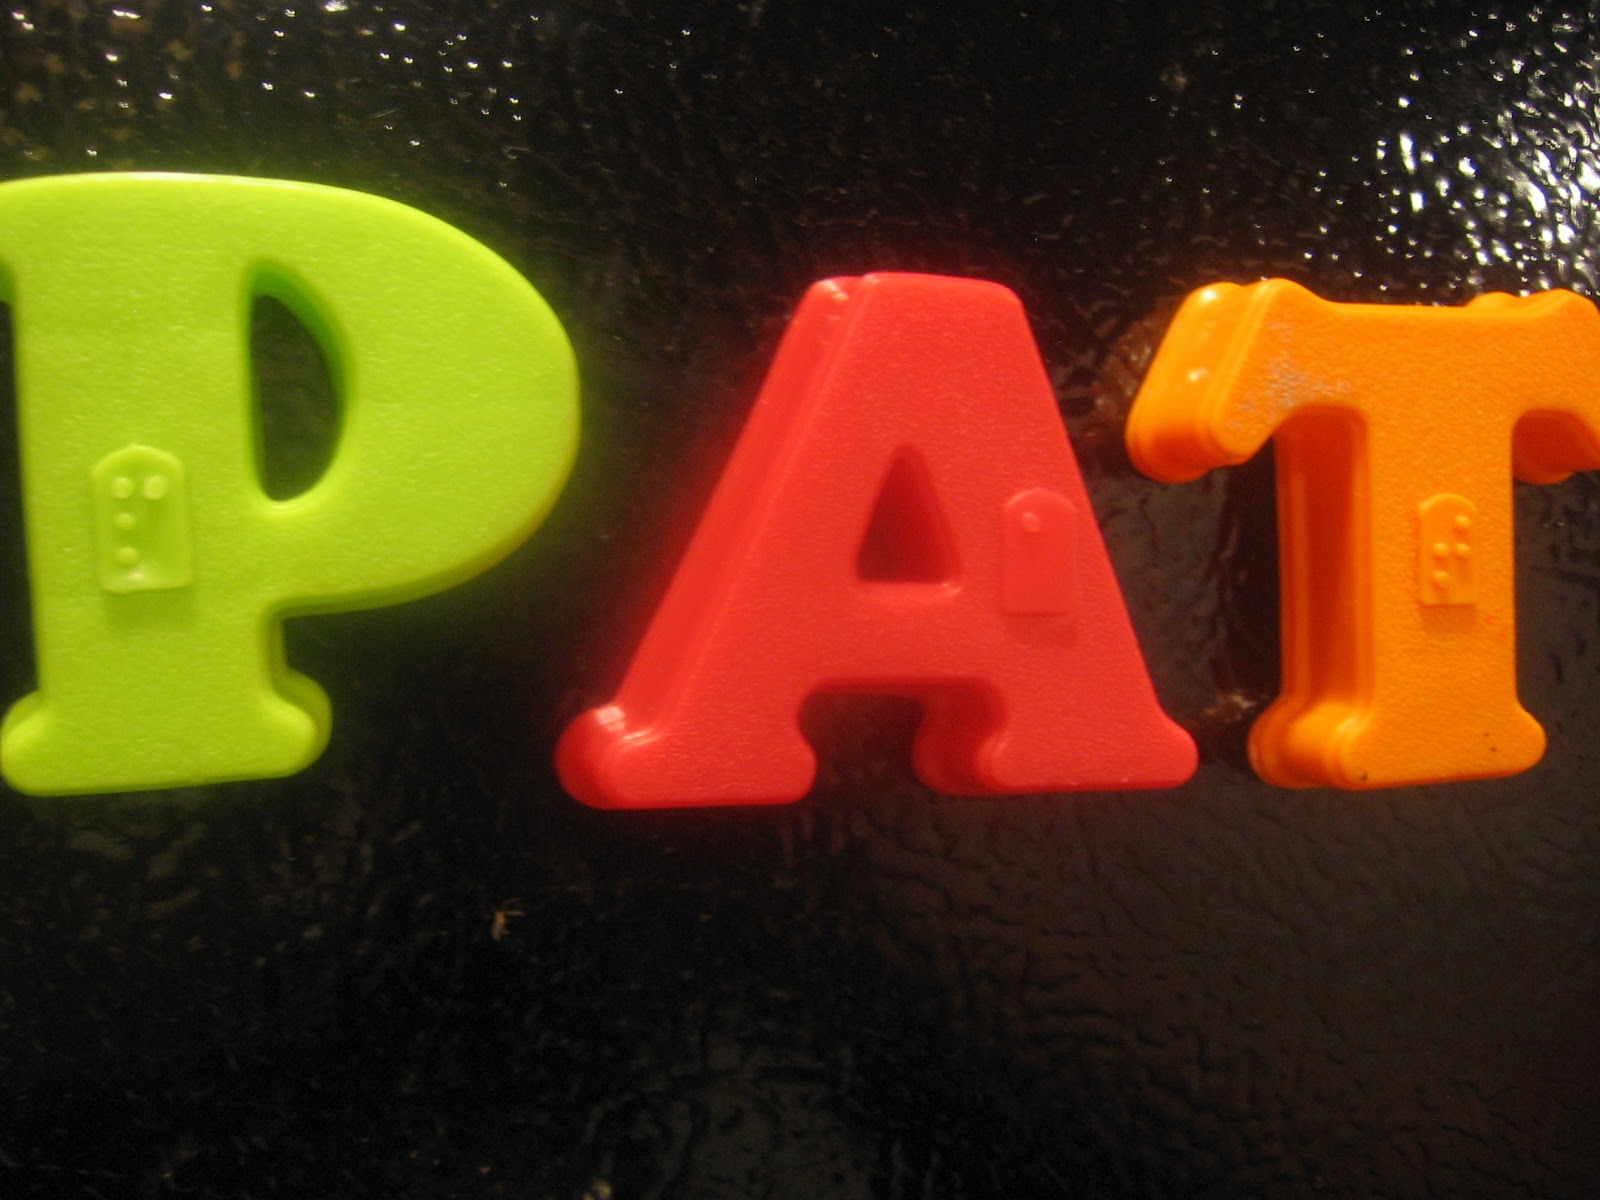 We also have a set of magnetic letters that have the braille